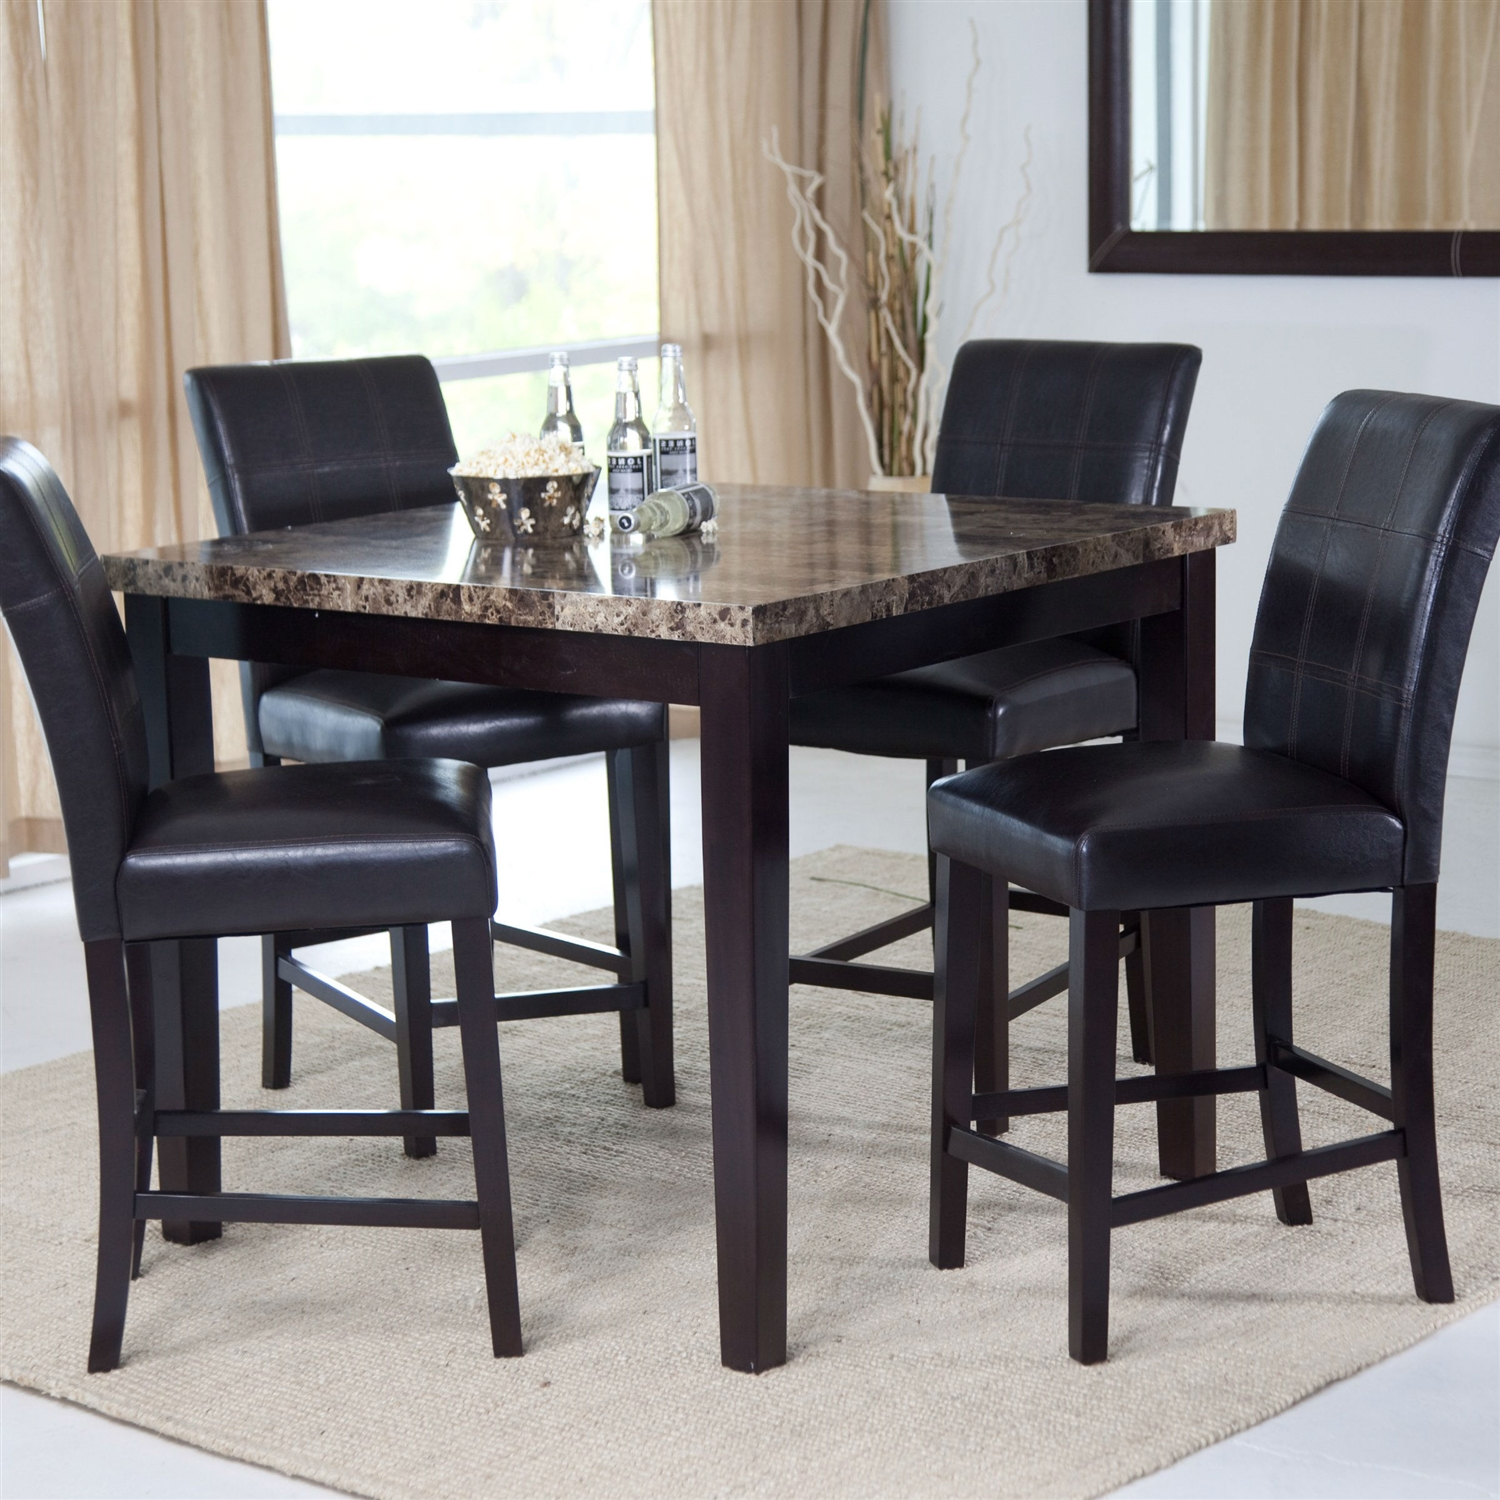 Countertop Dining Room Sets contemporary 42 x 42 inch counter height dining table with faux